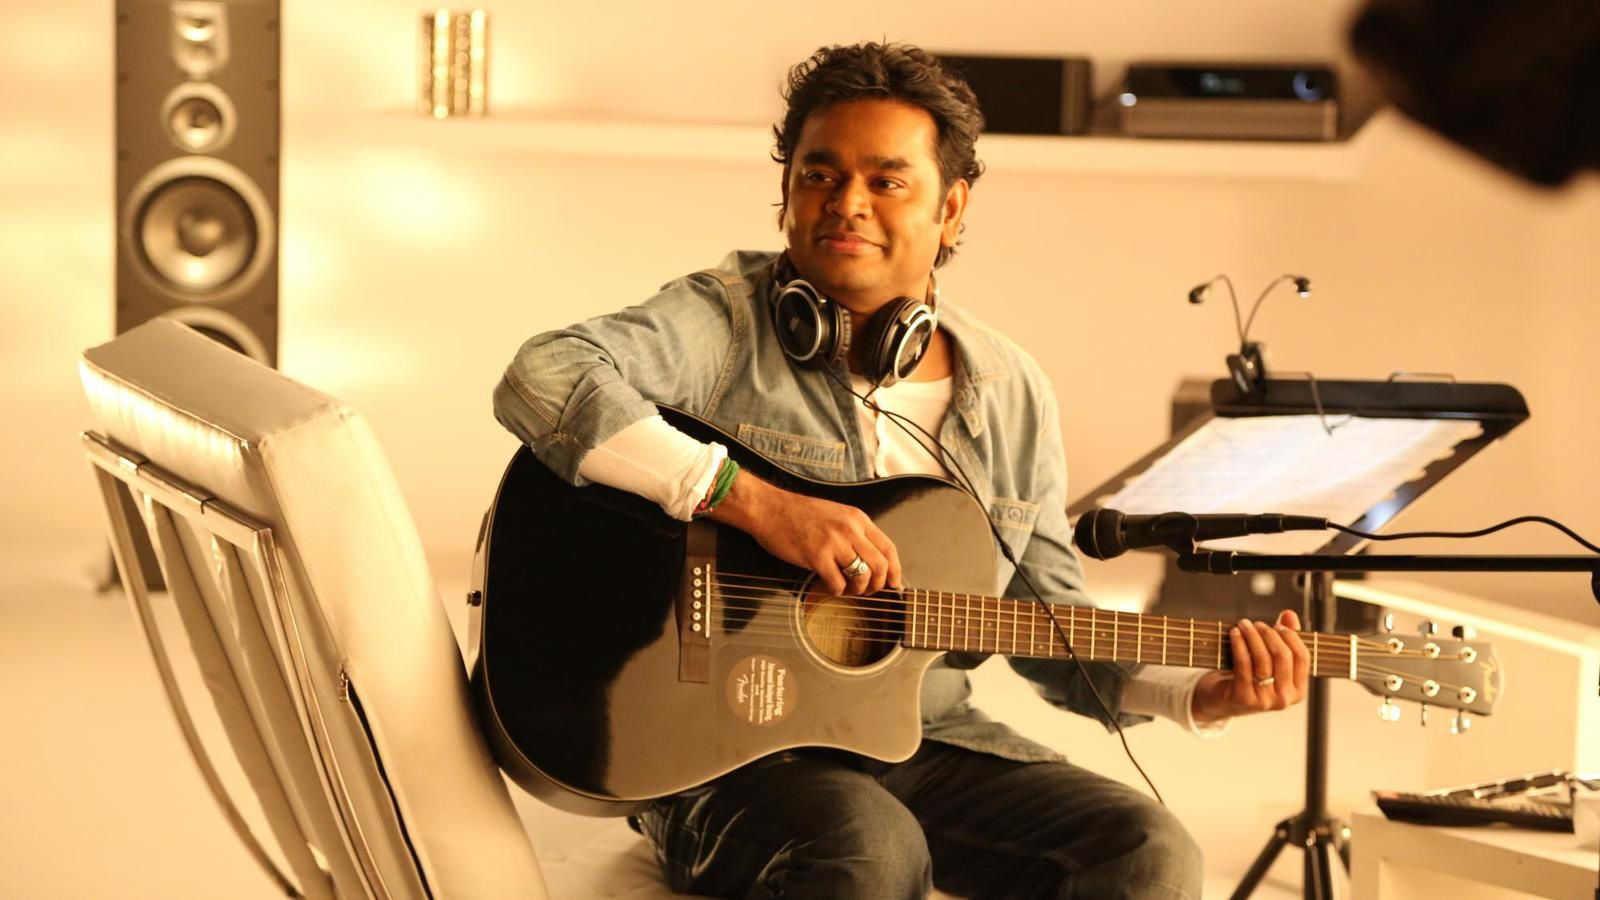 HAPPY BIRTHDAY AR RAHMAN !!!